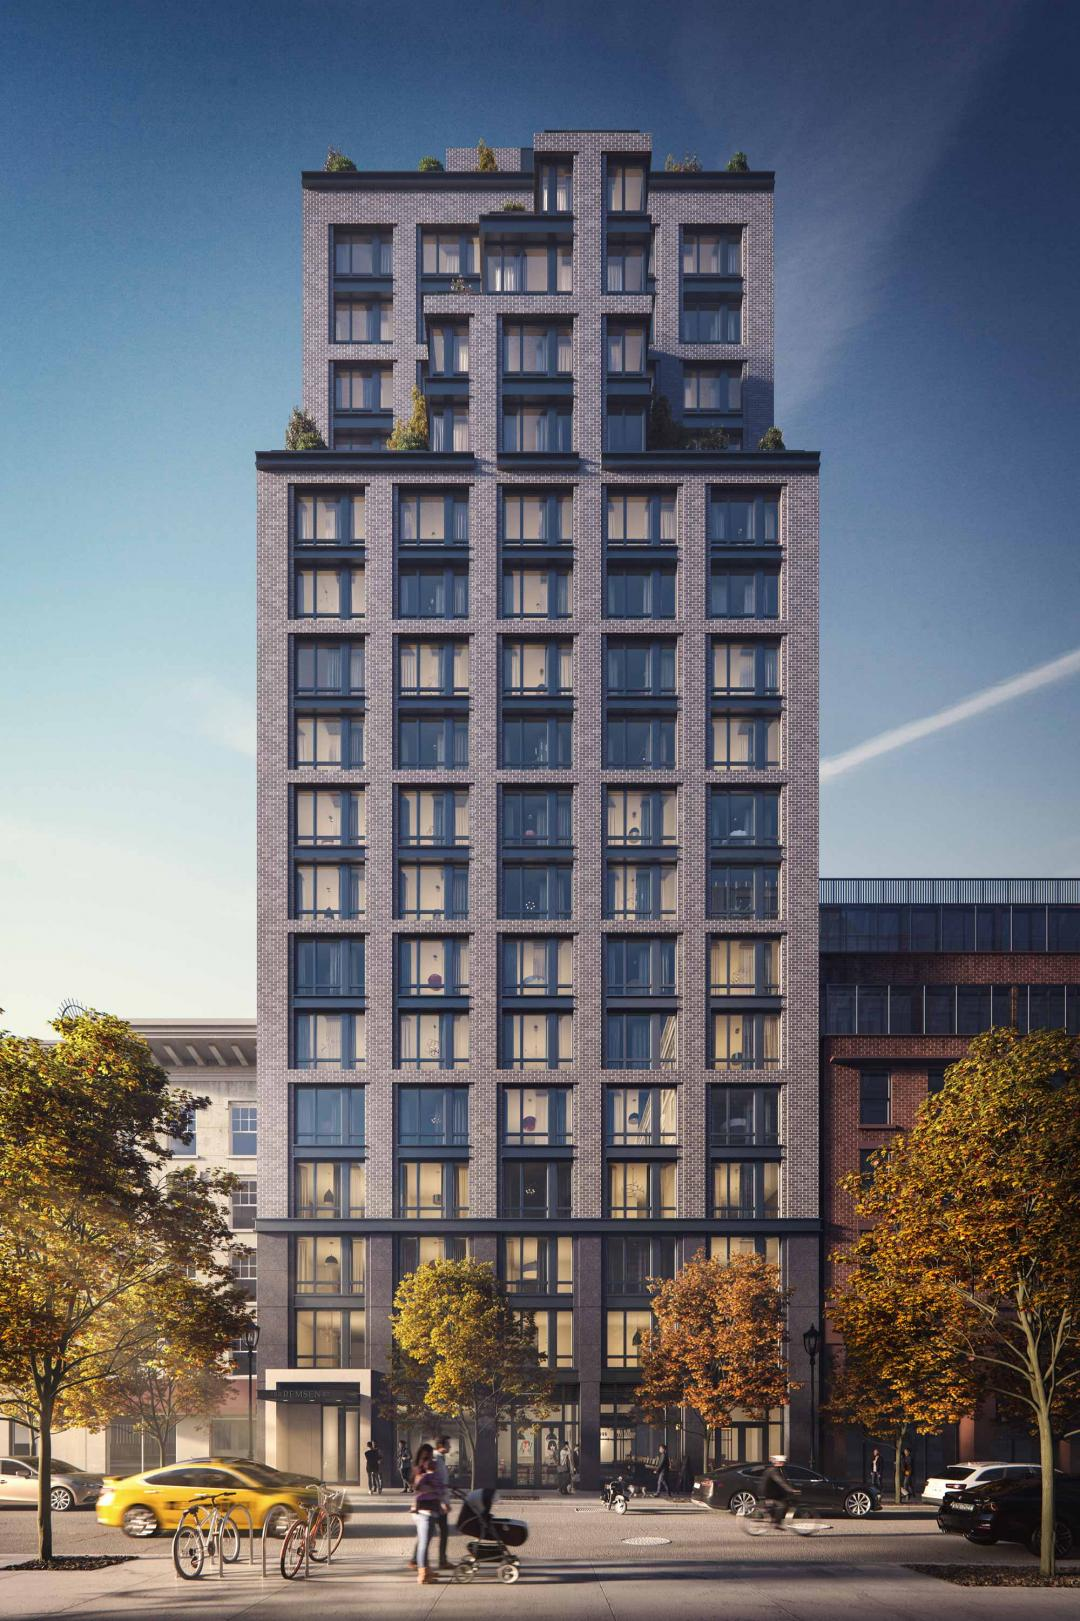 Aparments for rent at 153 Remsen Street in Brooklyn Heights